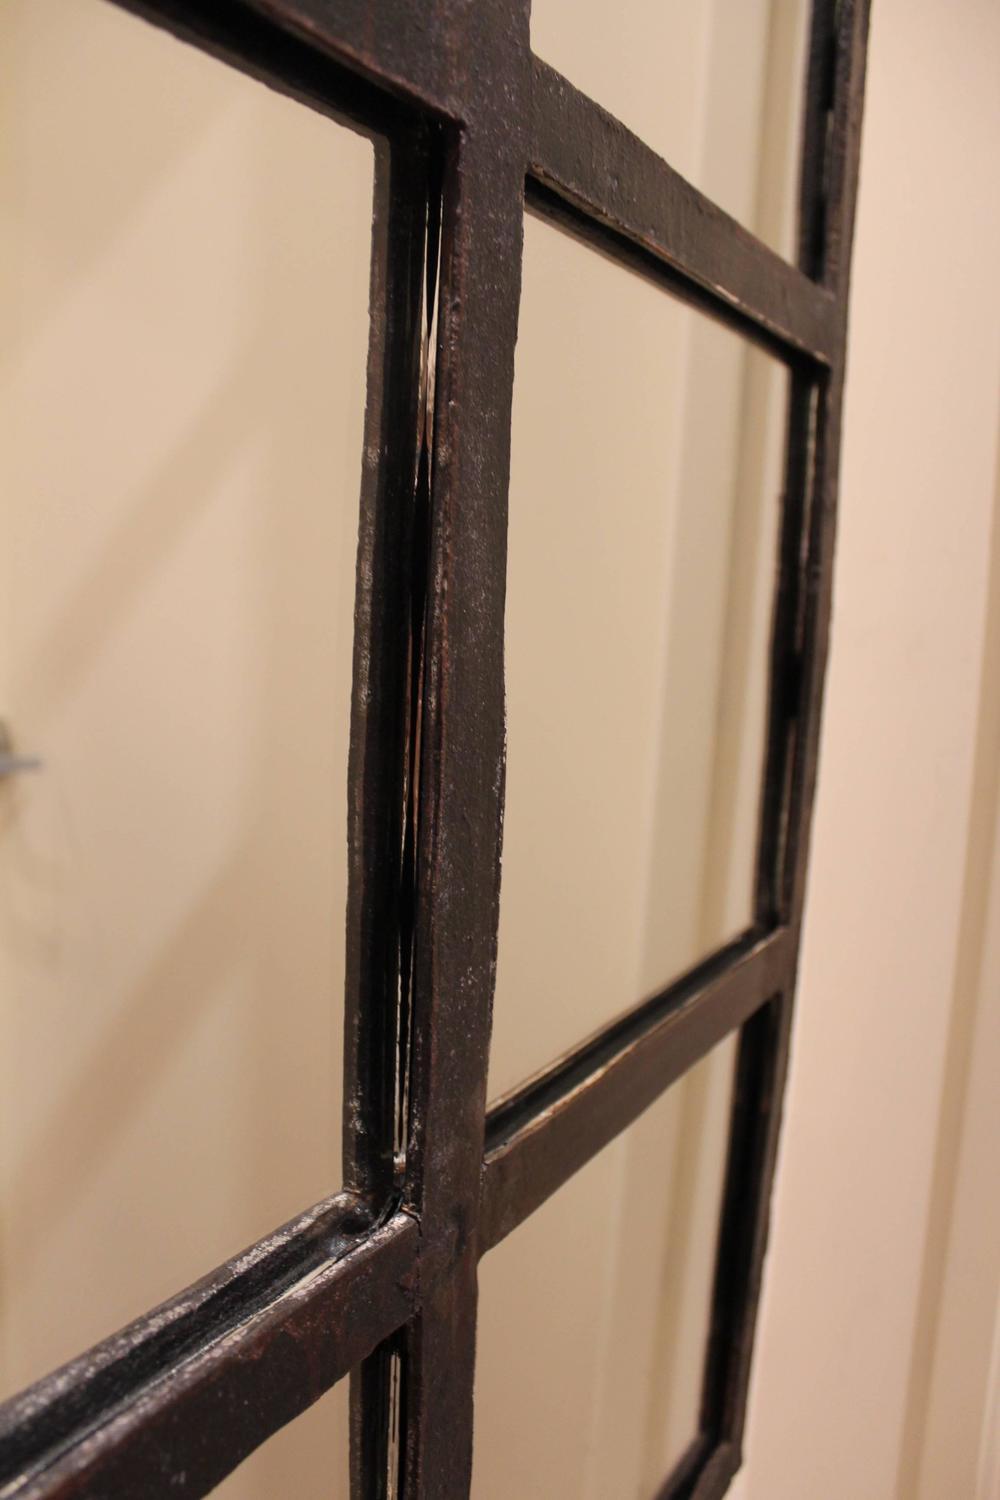 Industrial iron arch window frame mirror for sale at 1stdibs for Window mirrors for sale